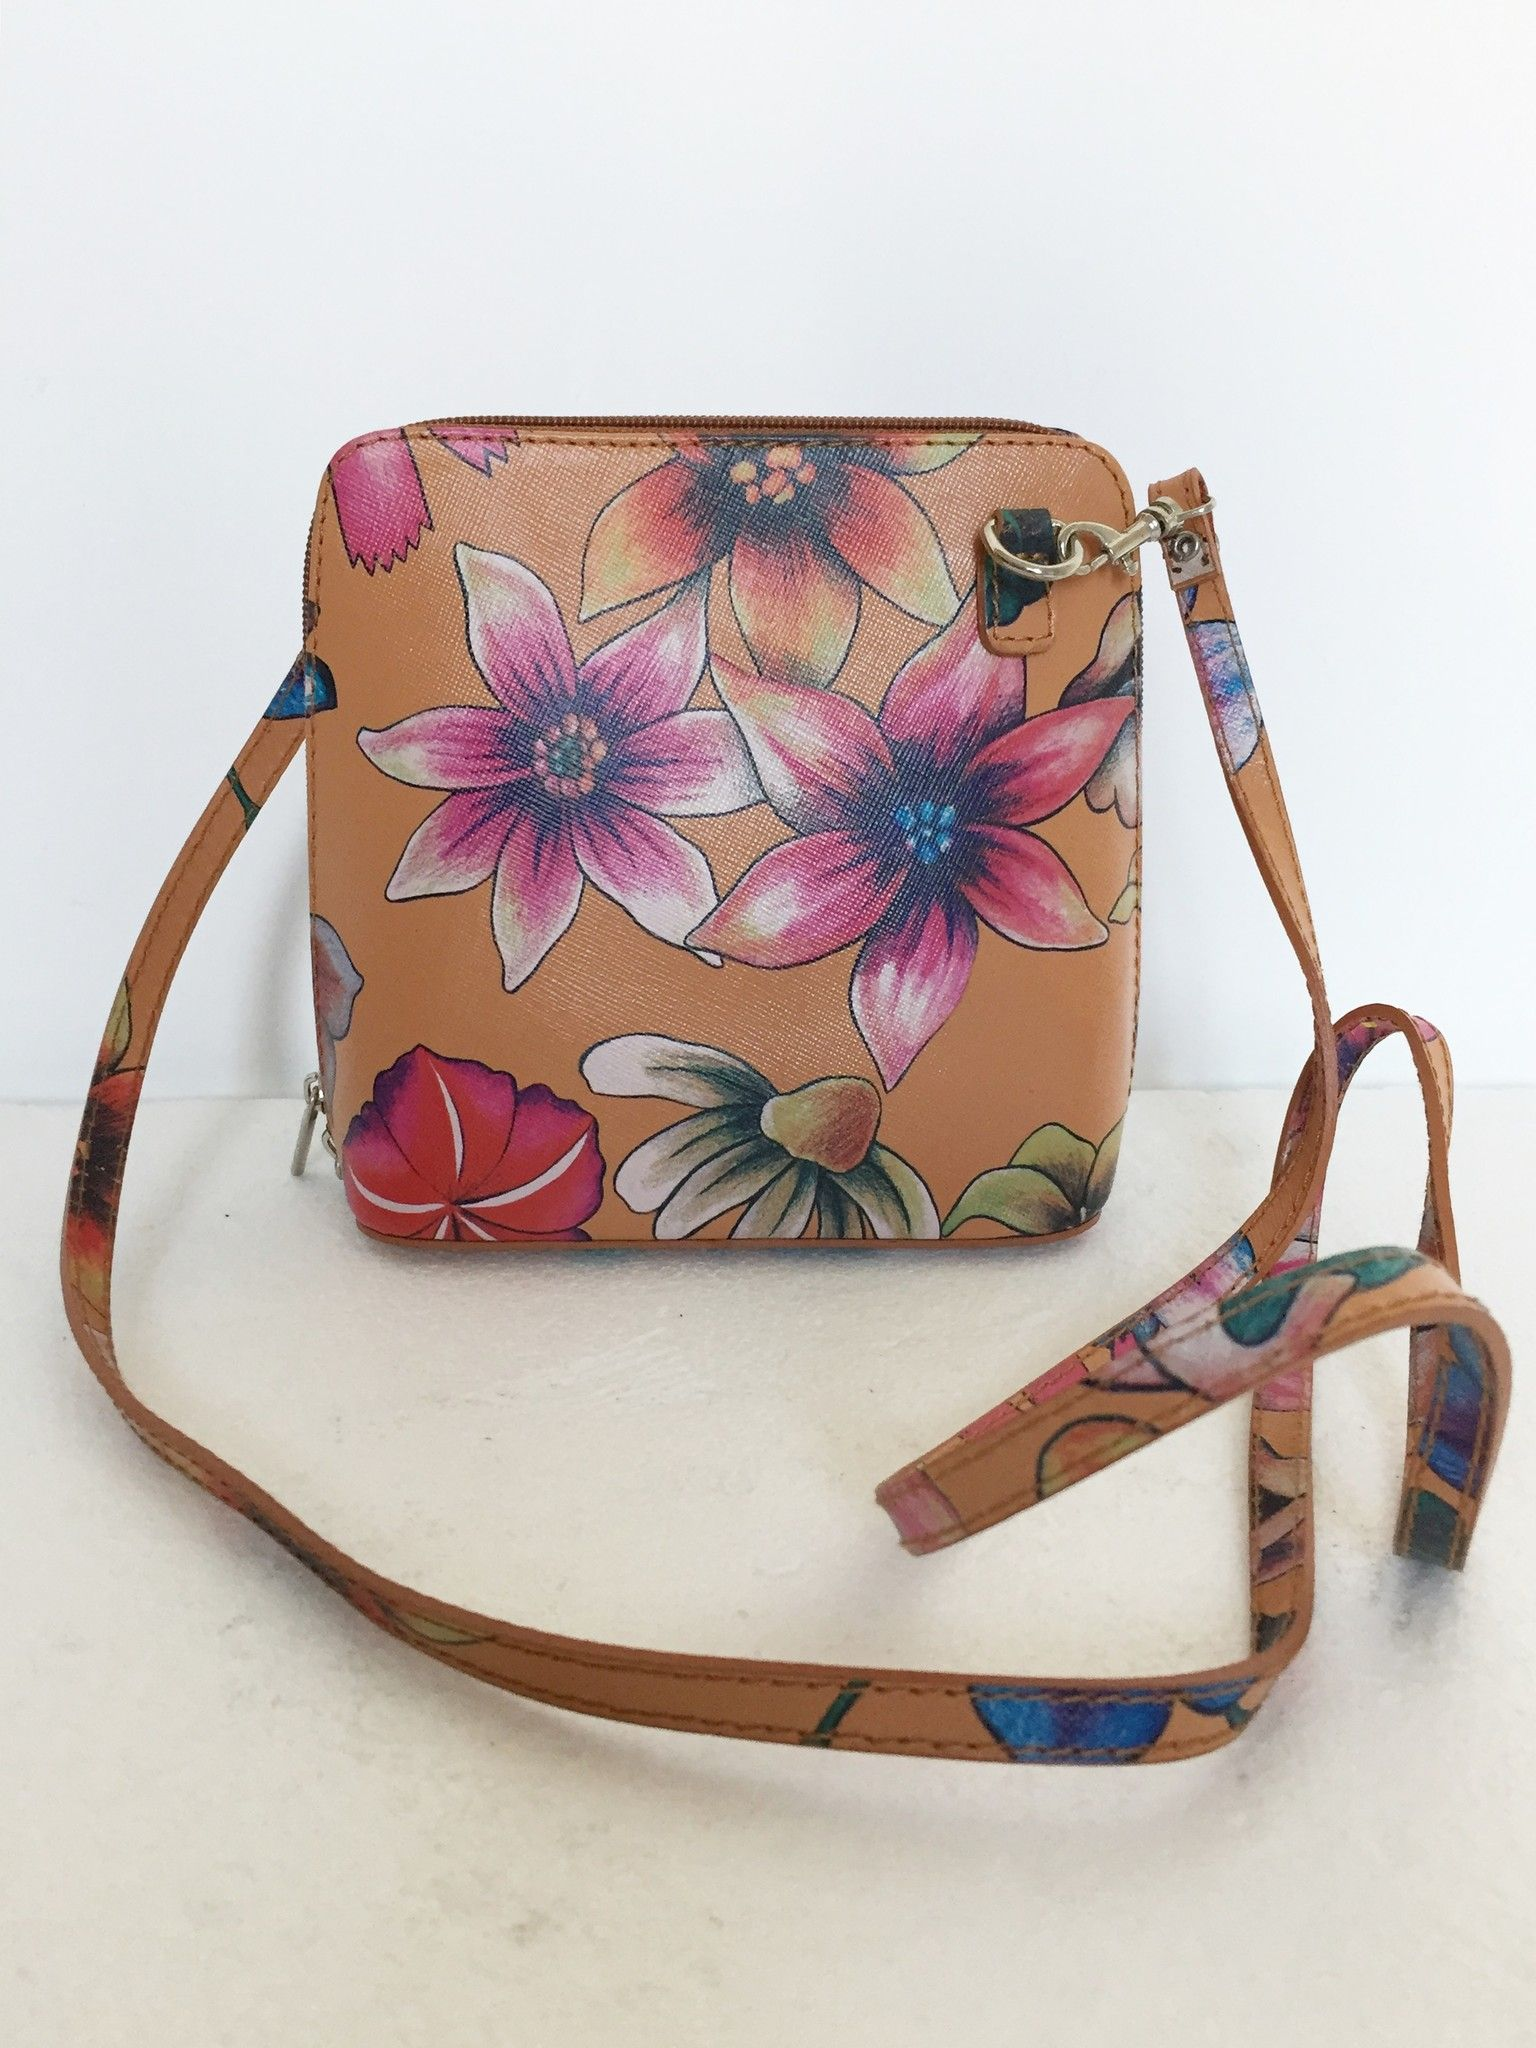 LadyBug mini shoulder bag in floral design Cod.0102